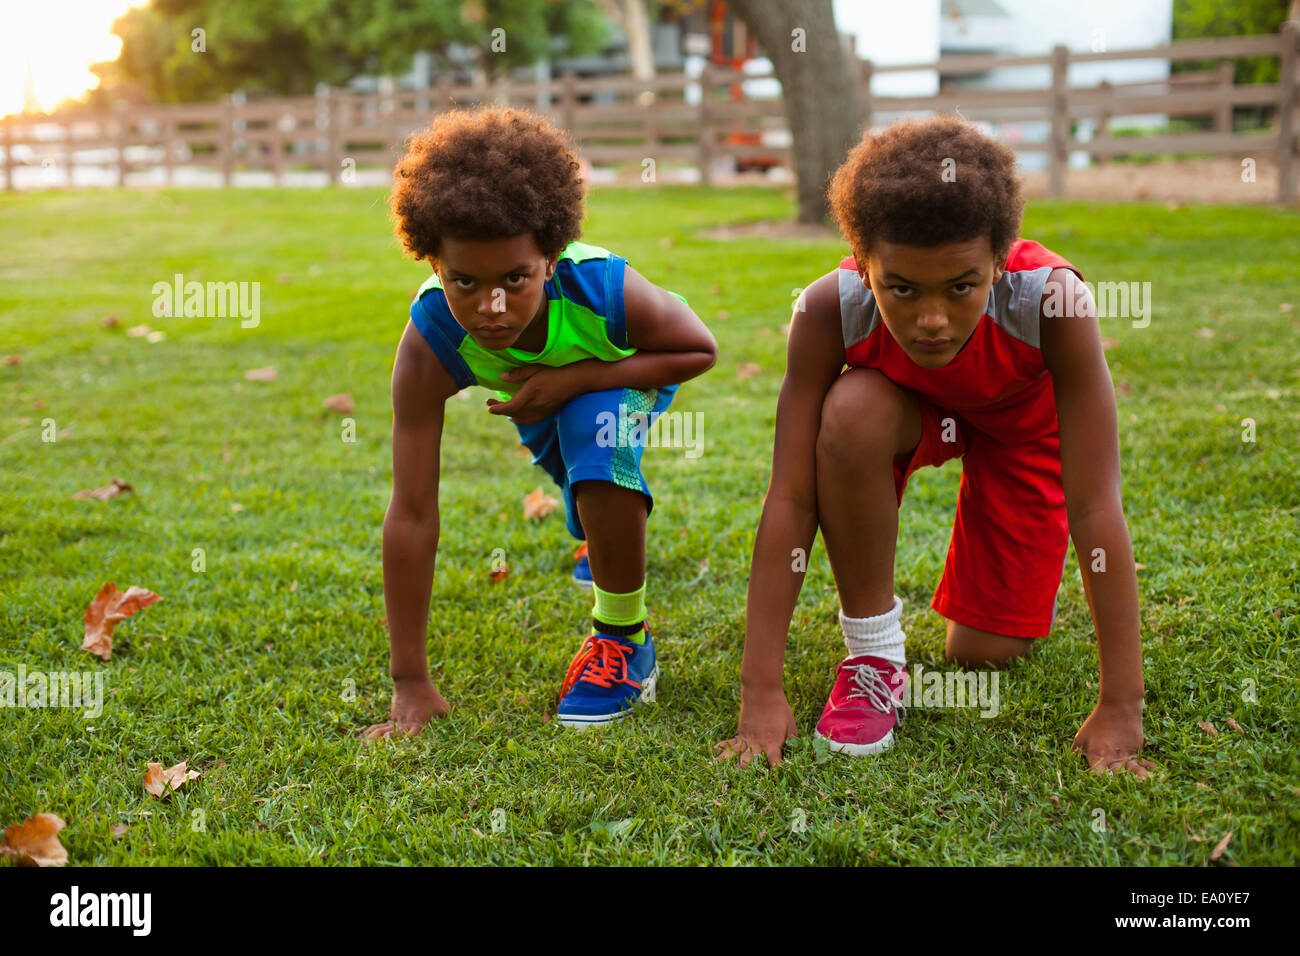 Two brothers preparing to race in park - Stock Image